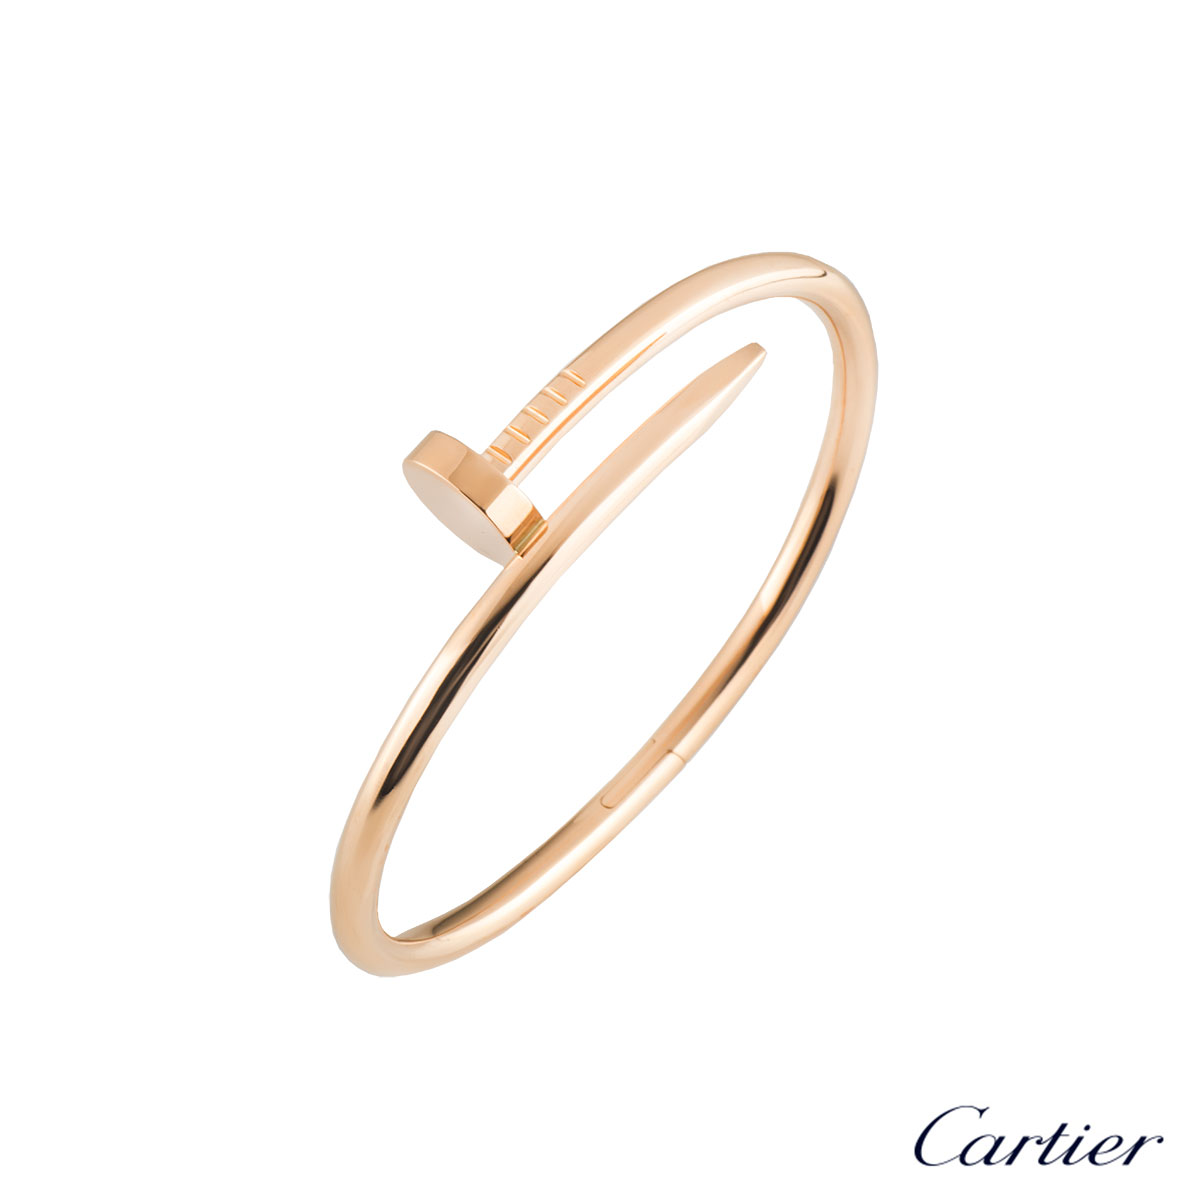 cartier the jewelry enlarged juste un bracelet bracelets clou products realreal bangle